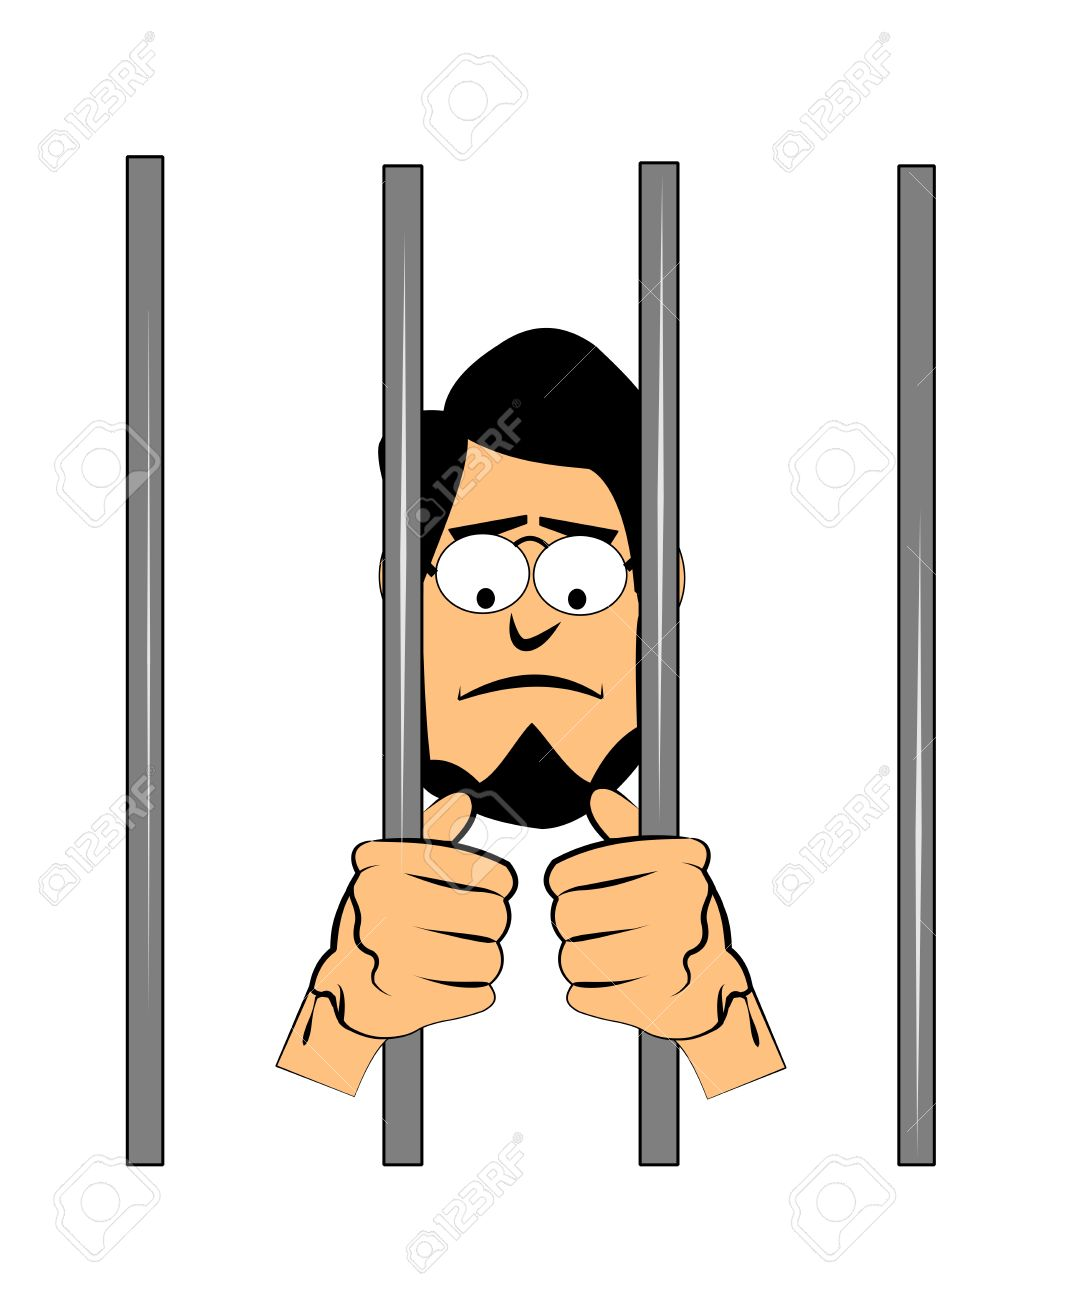 penalty clipart 23640197 man with beard behind bars in jail Stock.